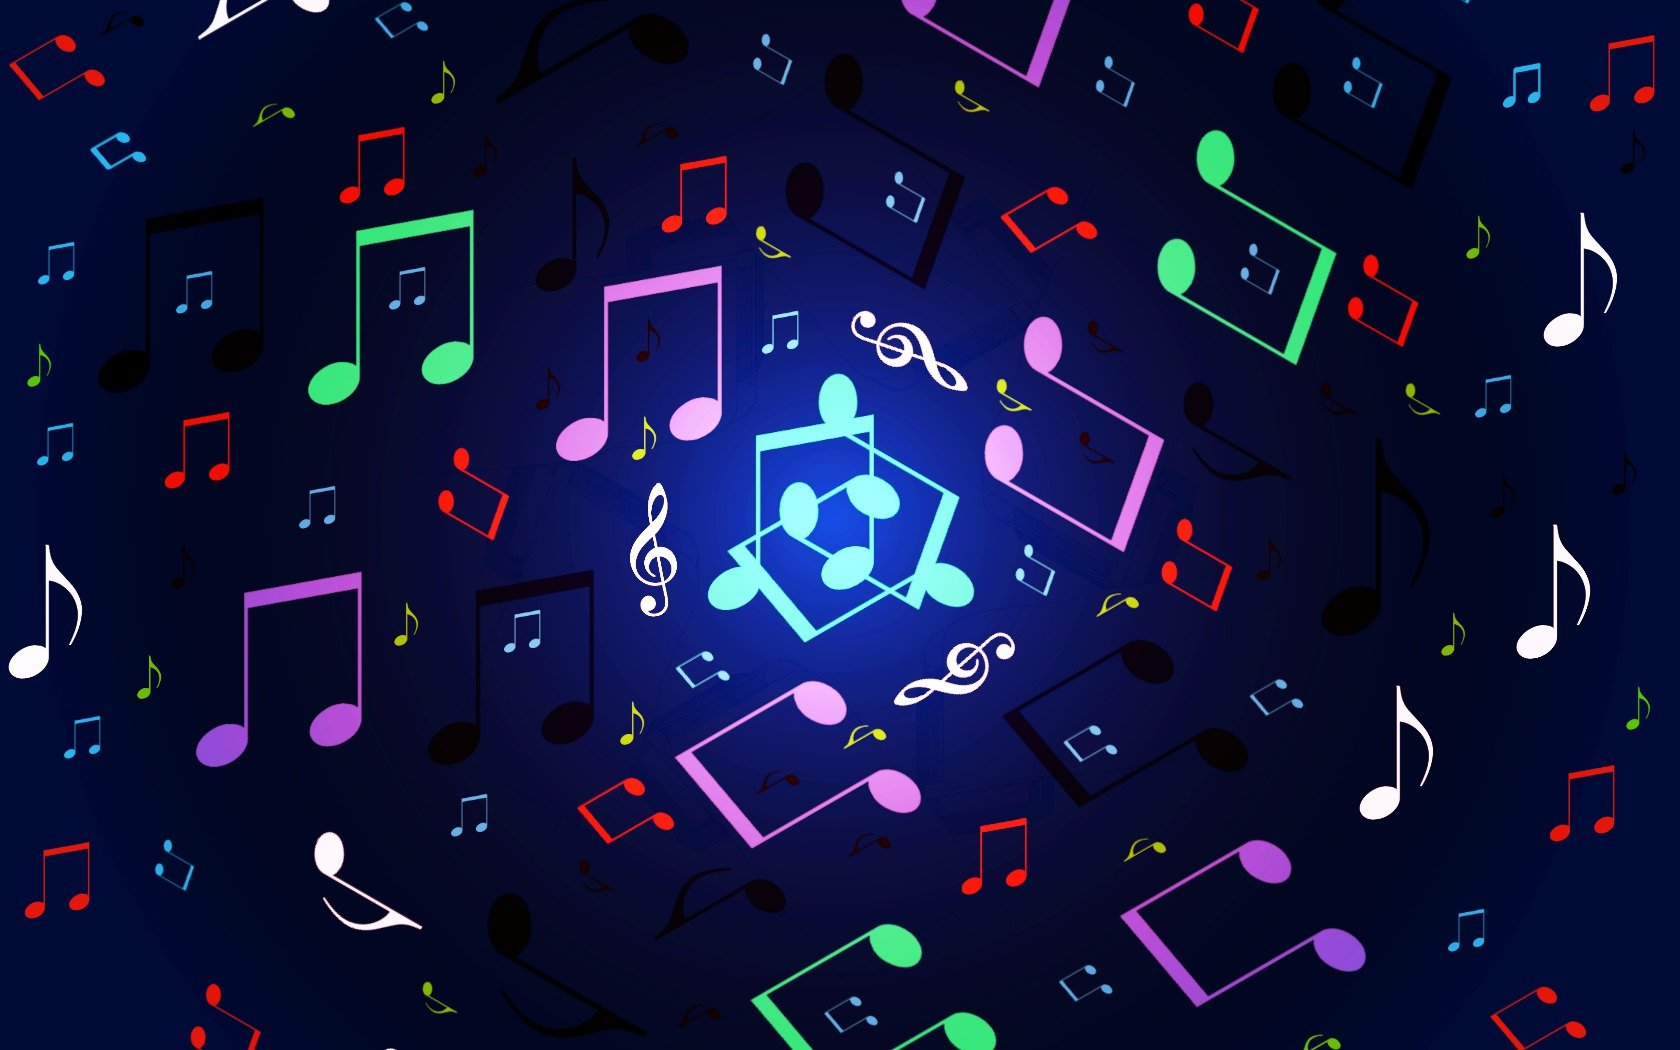 Music Note Wallpaper - WallpaperSafari